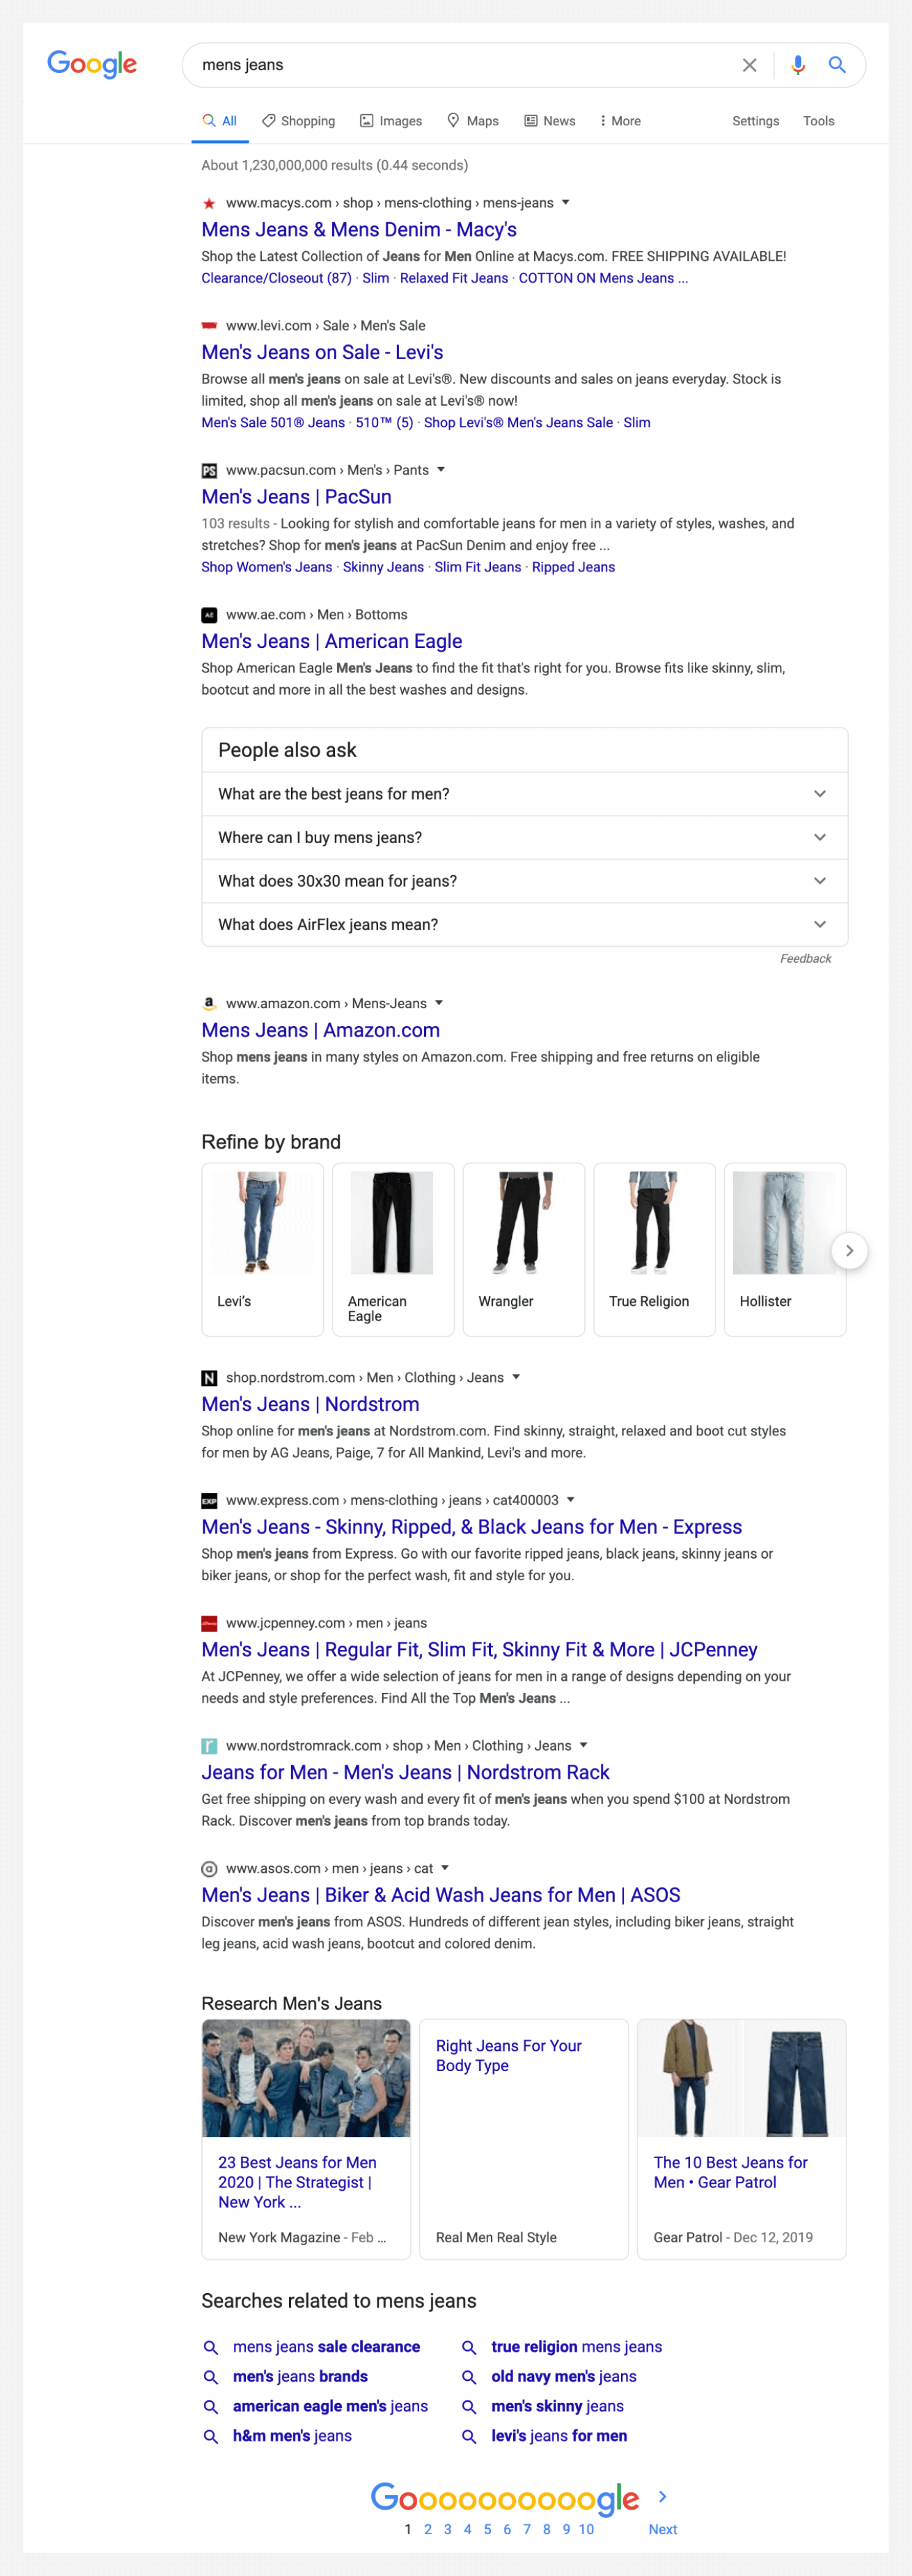 Search engine result page for mens jeans.